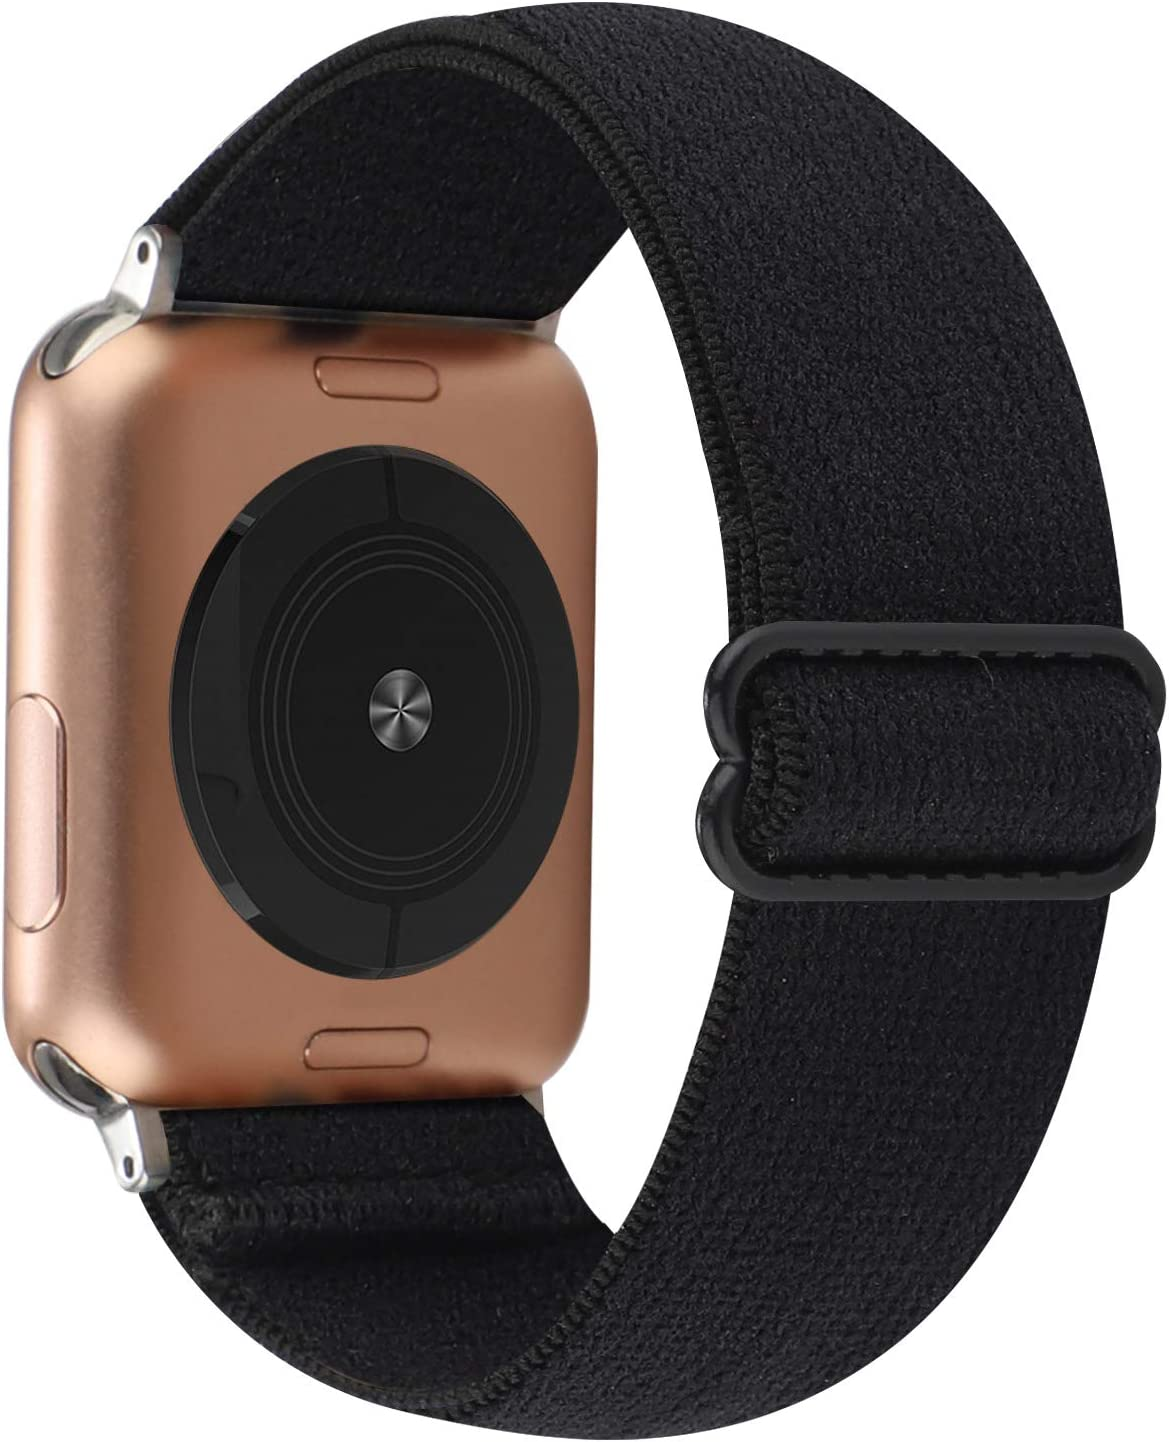 Adjustable Stretchy Solo Loop Nylon Strap Compatible with Apple Watch Elastic Band 38mm 40mm iWatch Series SE/6/5/4/3/2/1 (Black with Series 6/5/4 Clear Case, 38mm/40mm)